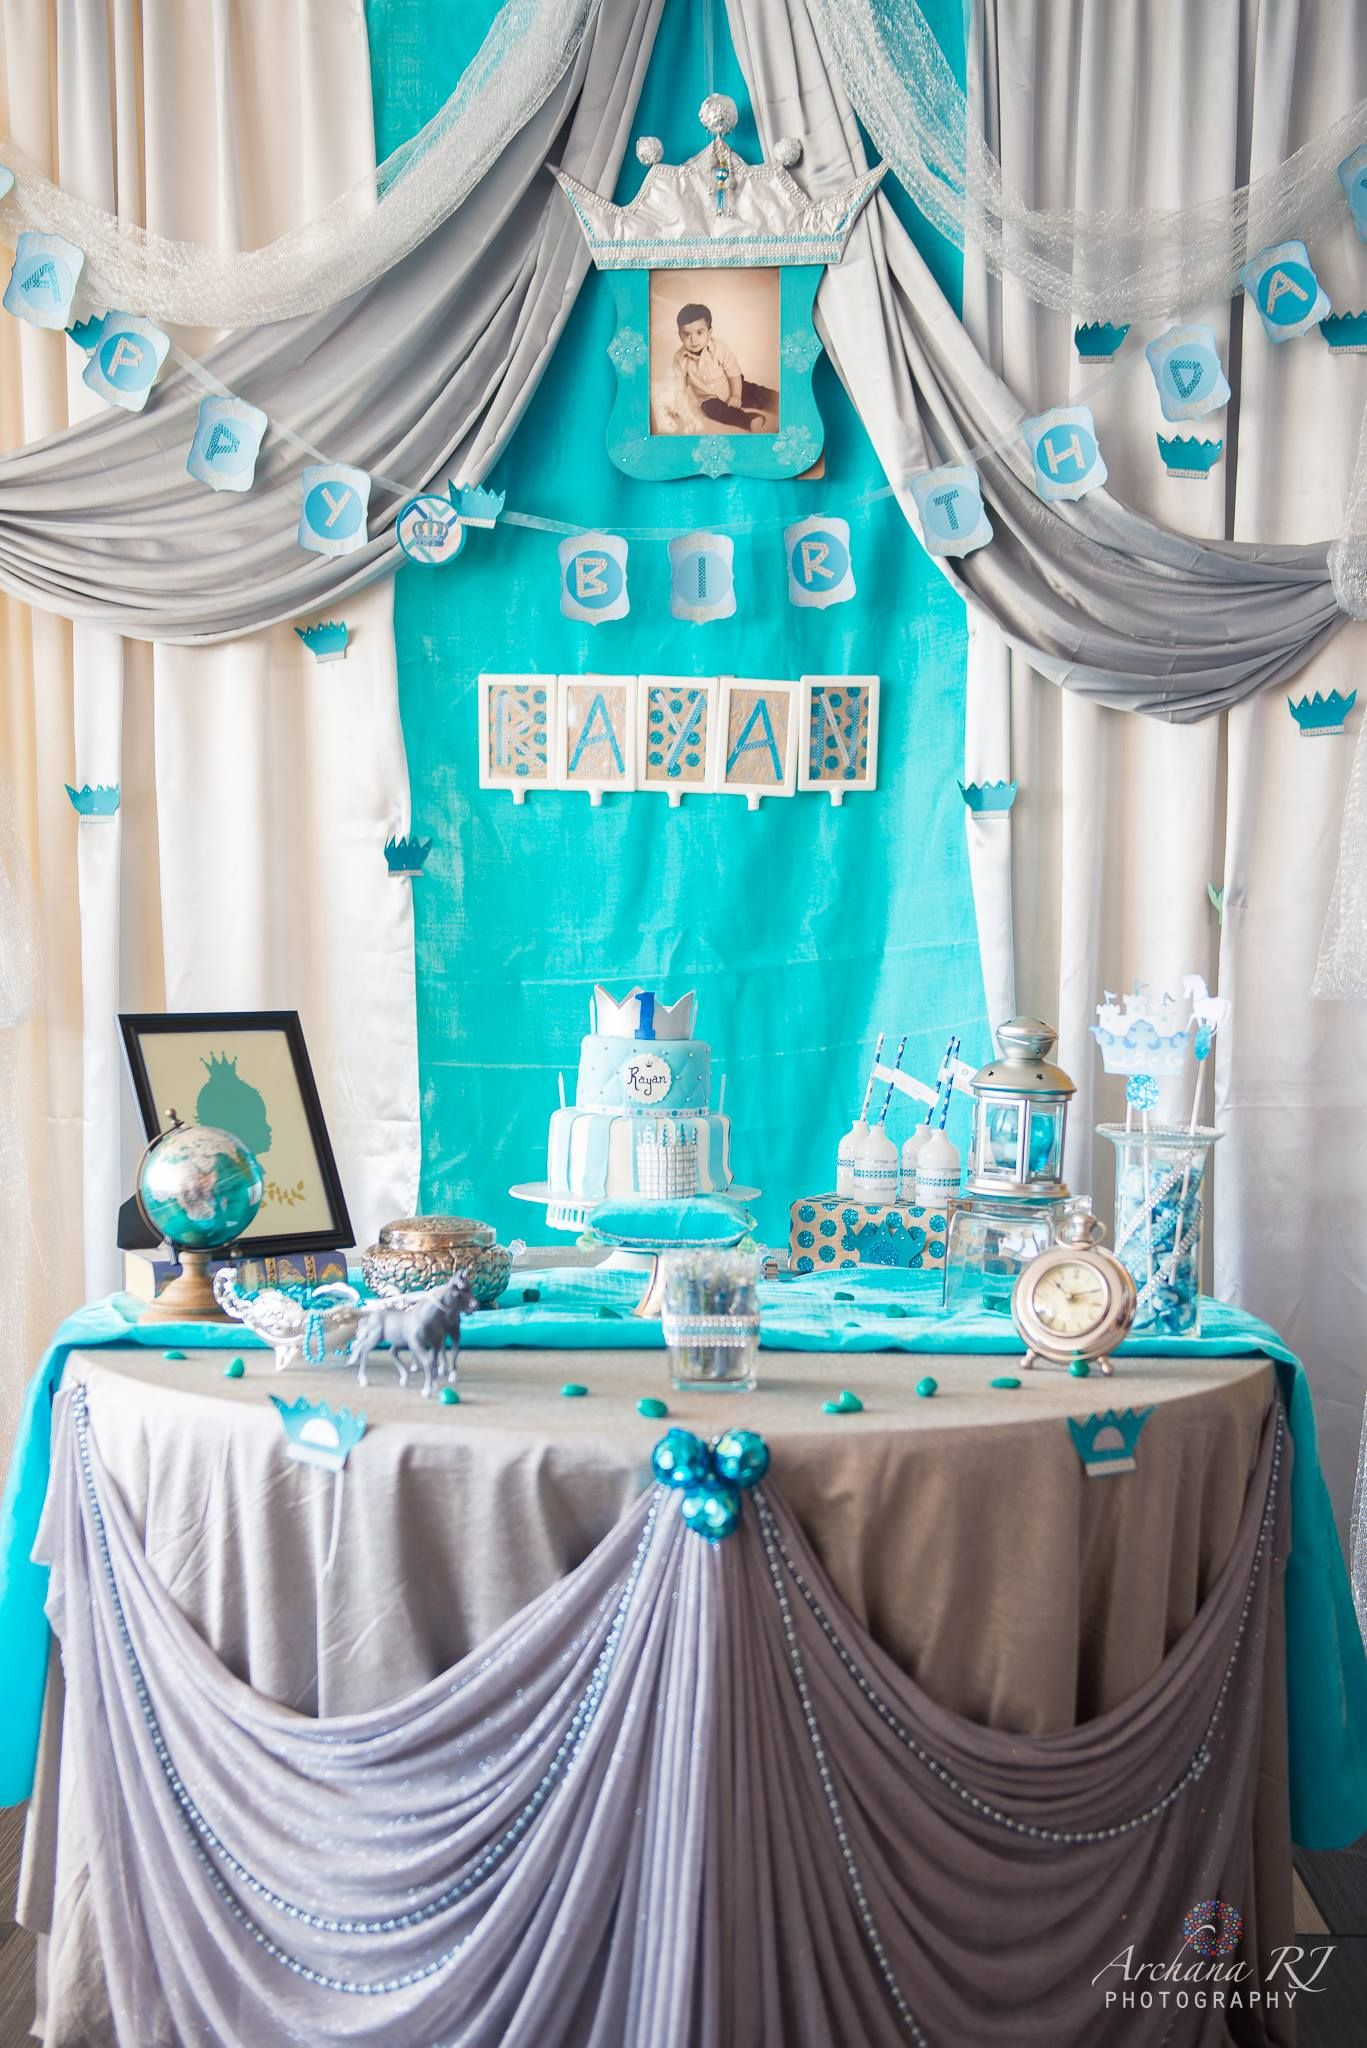 We Chose To Go With A Turquoise White Silver And Tinge Of